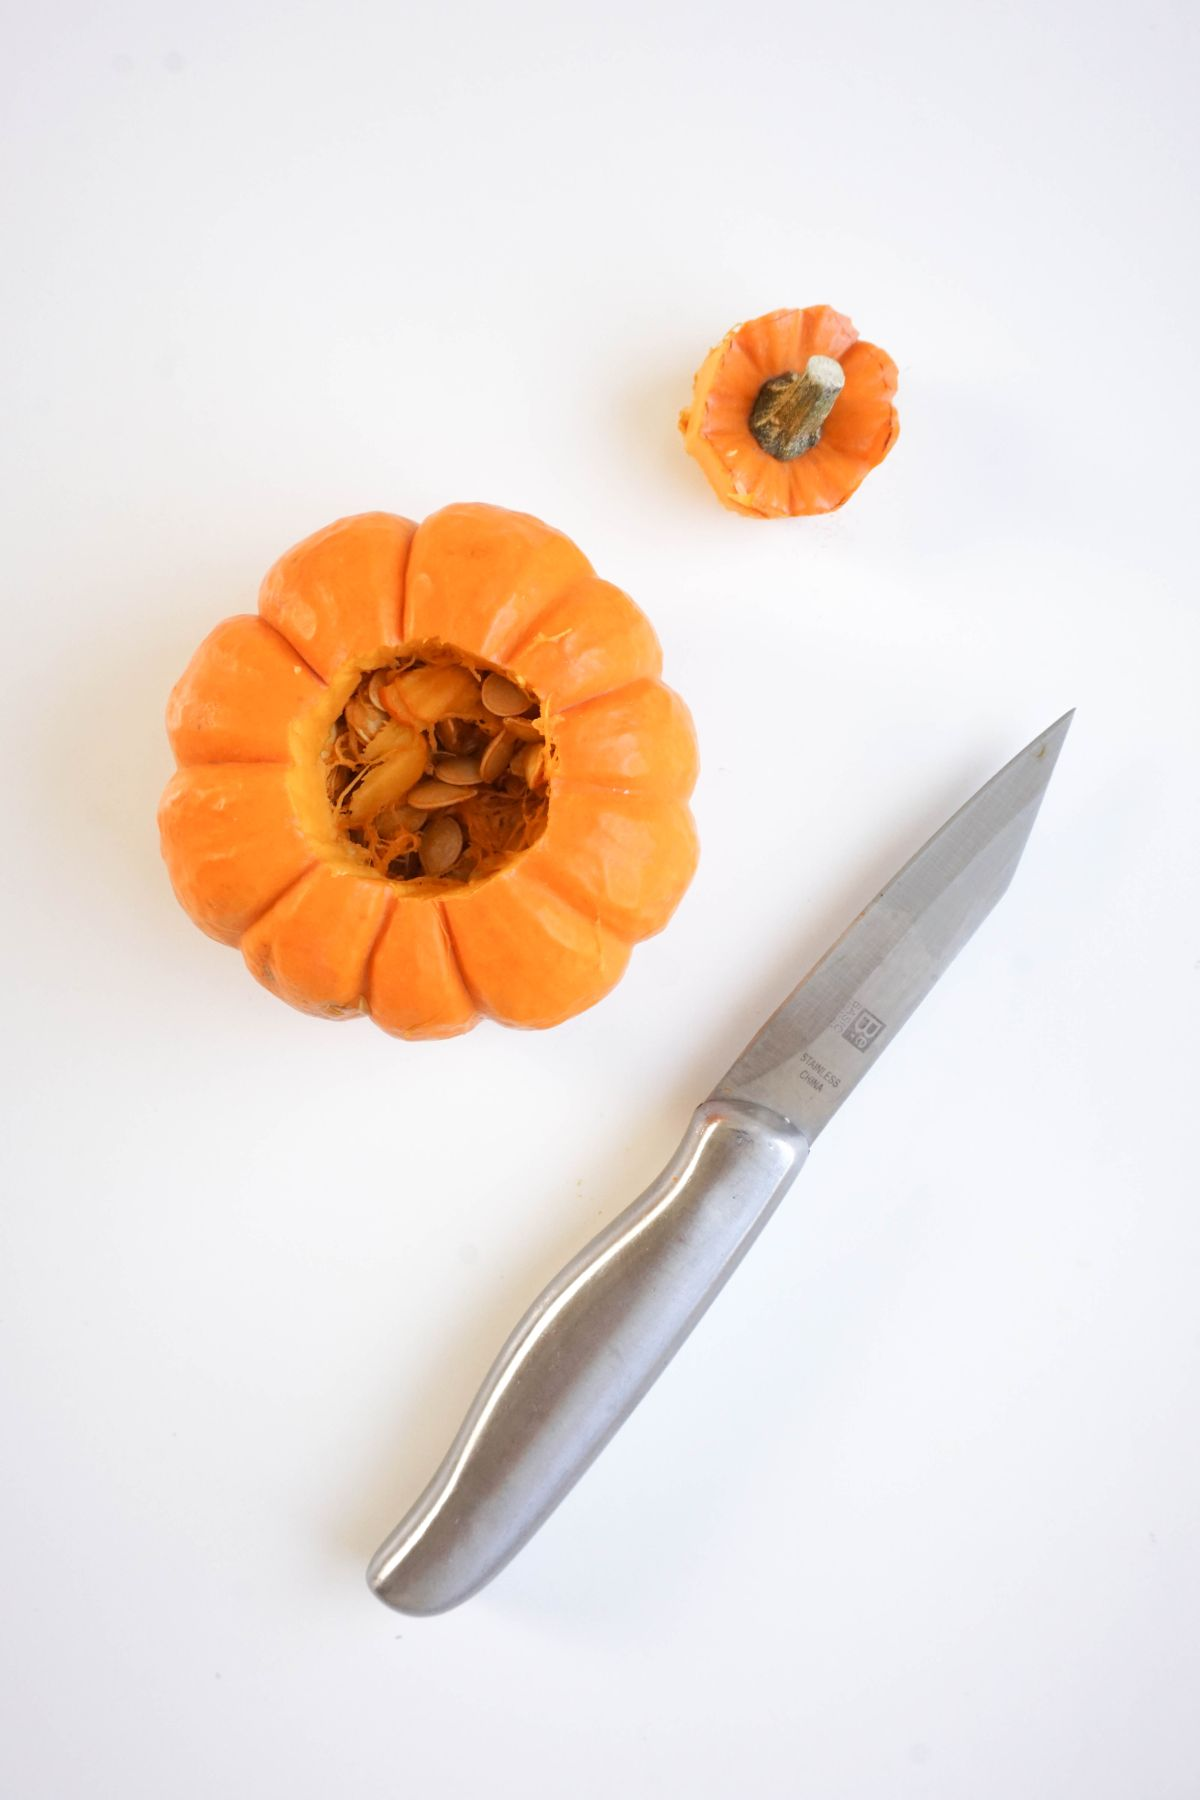 Jewel Tone Pumpkin Votives Cut with a Knife